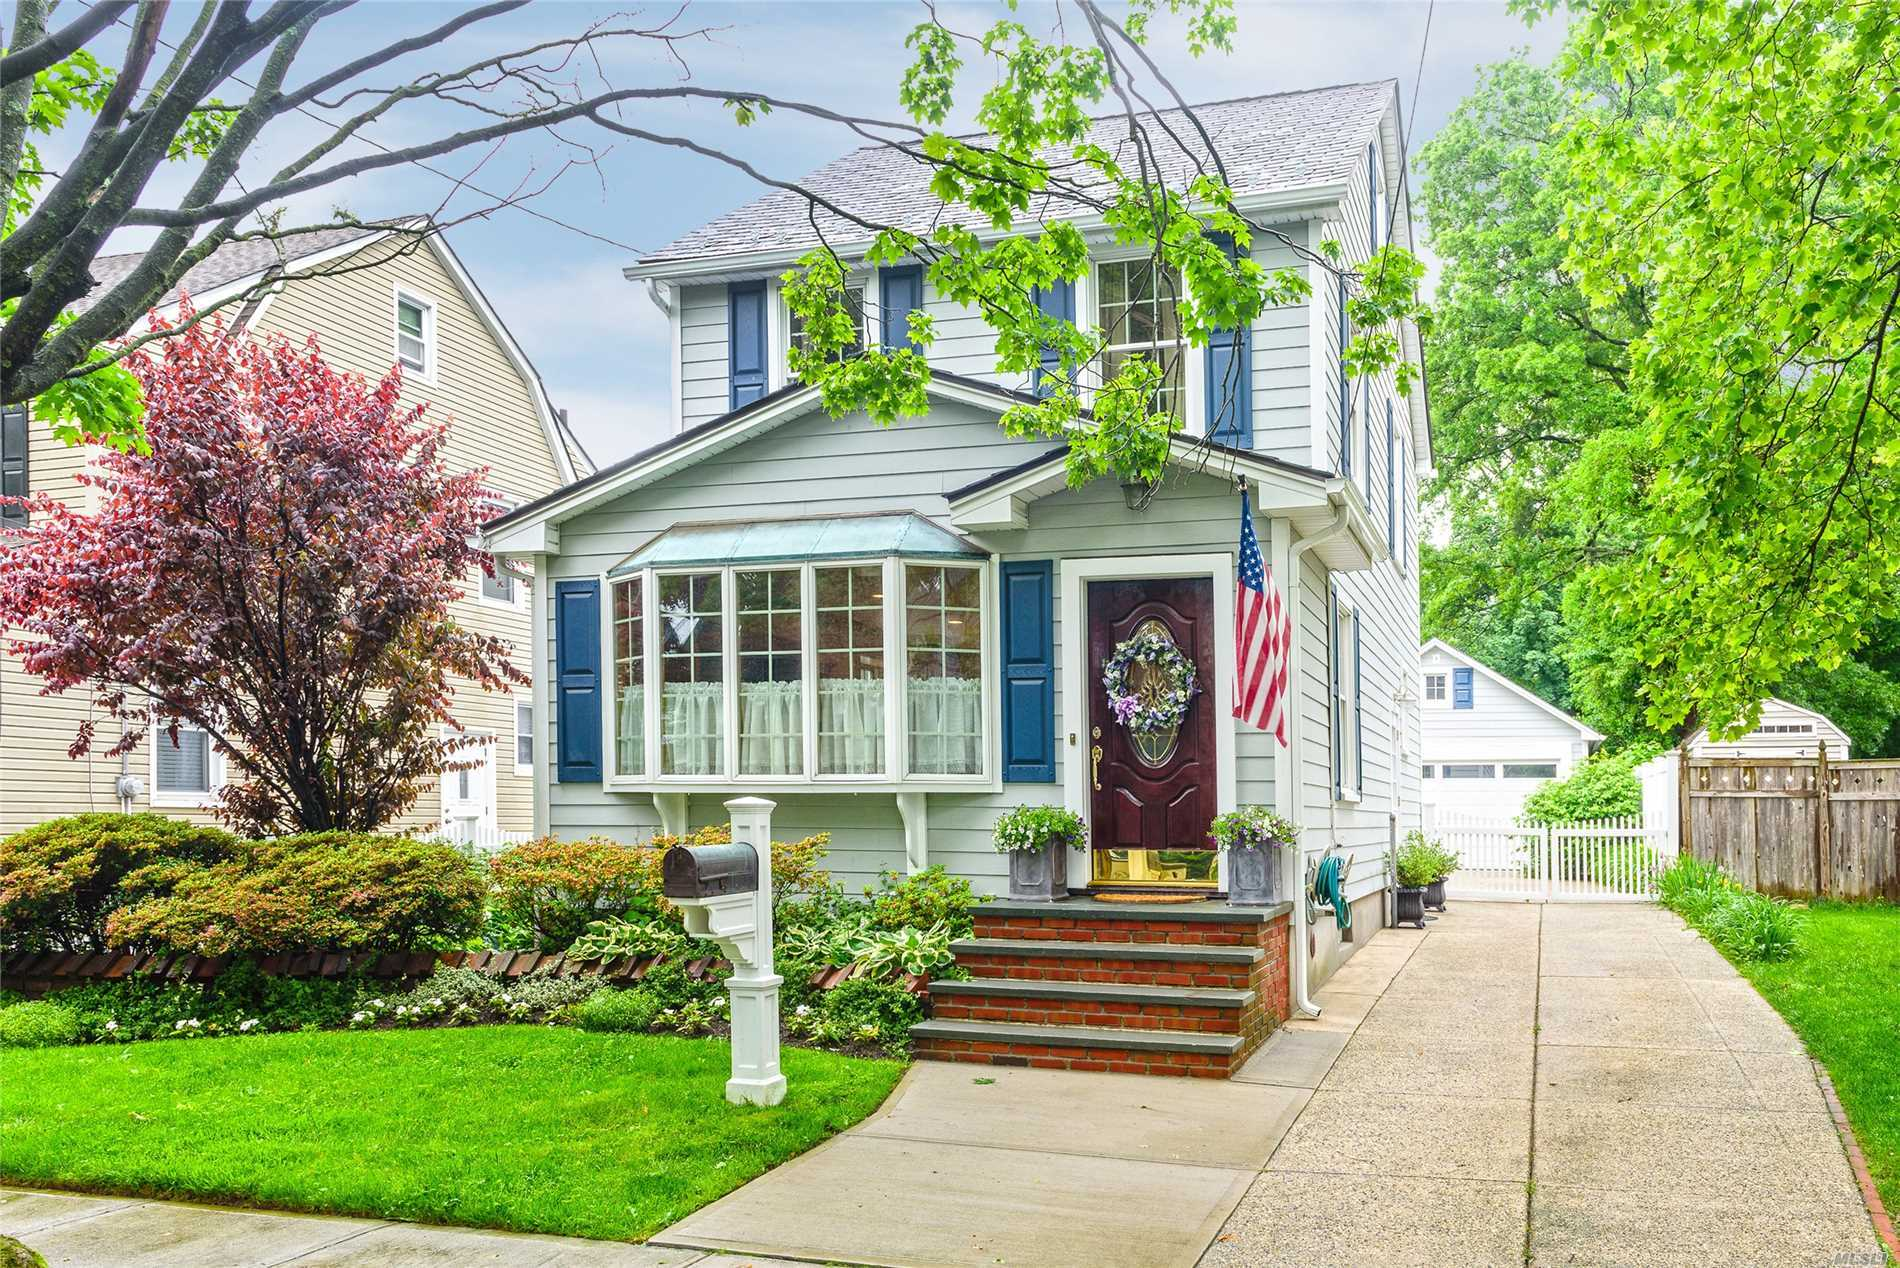 Sun Filled Updated Colonial On Tree Lined Street, In The Heart Of Williston Park. Close To Park, Pool, Lirr, Shopping And Restaurants. Exceptionally Large Property With Patio, Beautiful Landscaped And Plantings. New Cac Unit, Red Pine Wood Floors, New Windows, Hardie Plank Siding, Screened Sun Room, New Gutters, Mineola Schools.